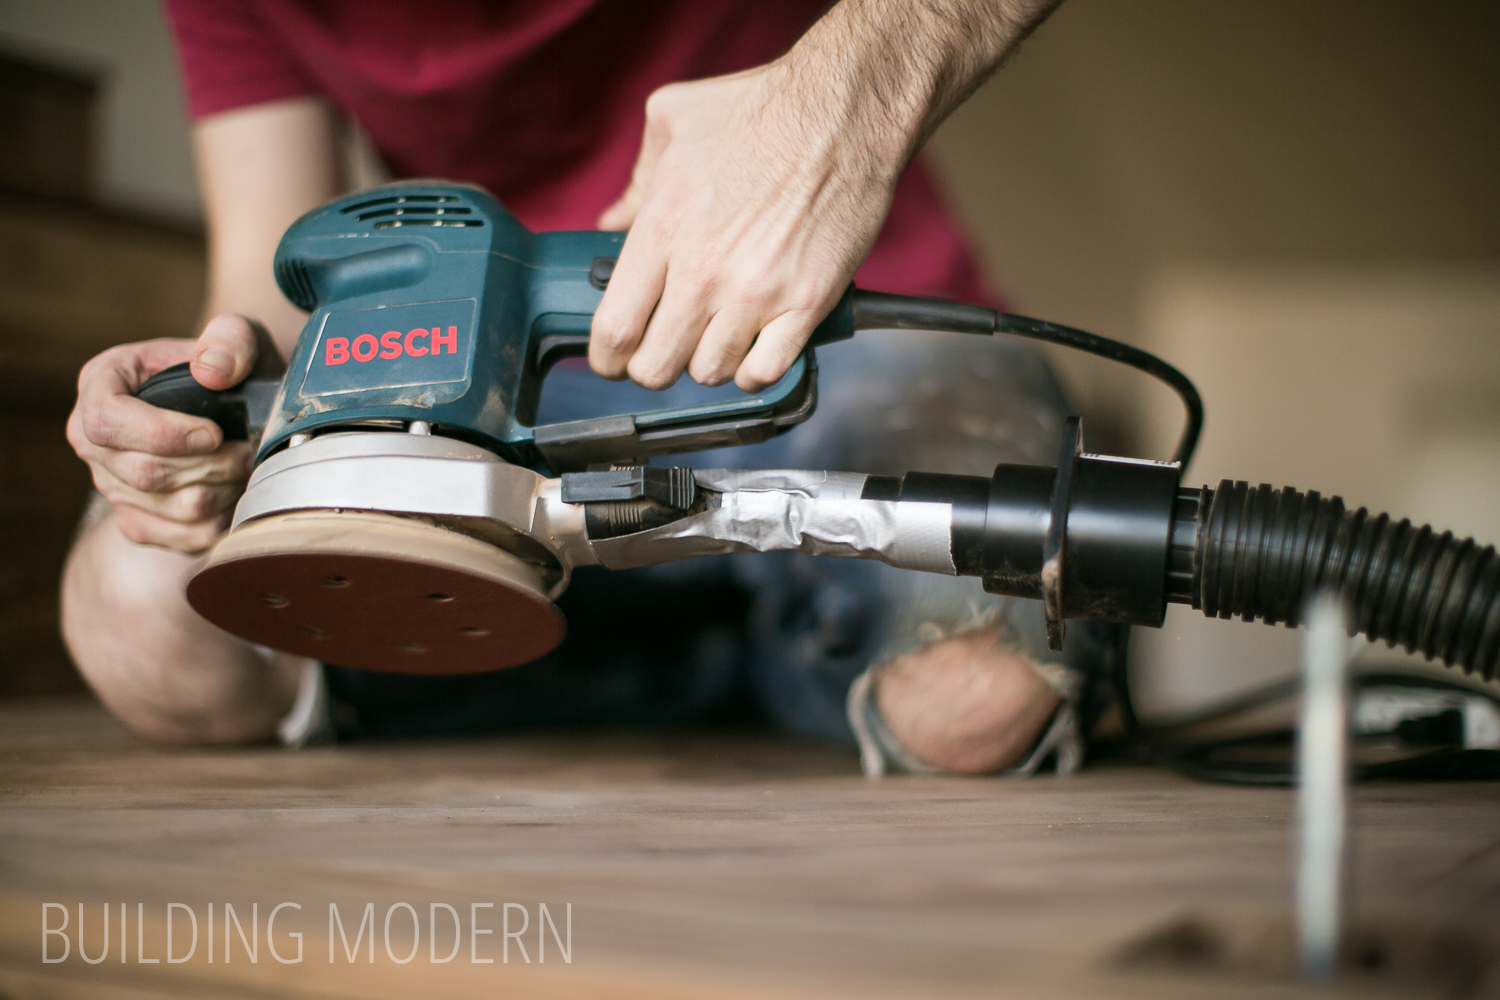 using a bosch random orbital sander